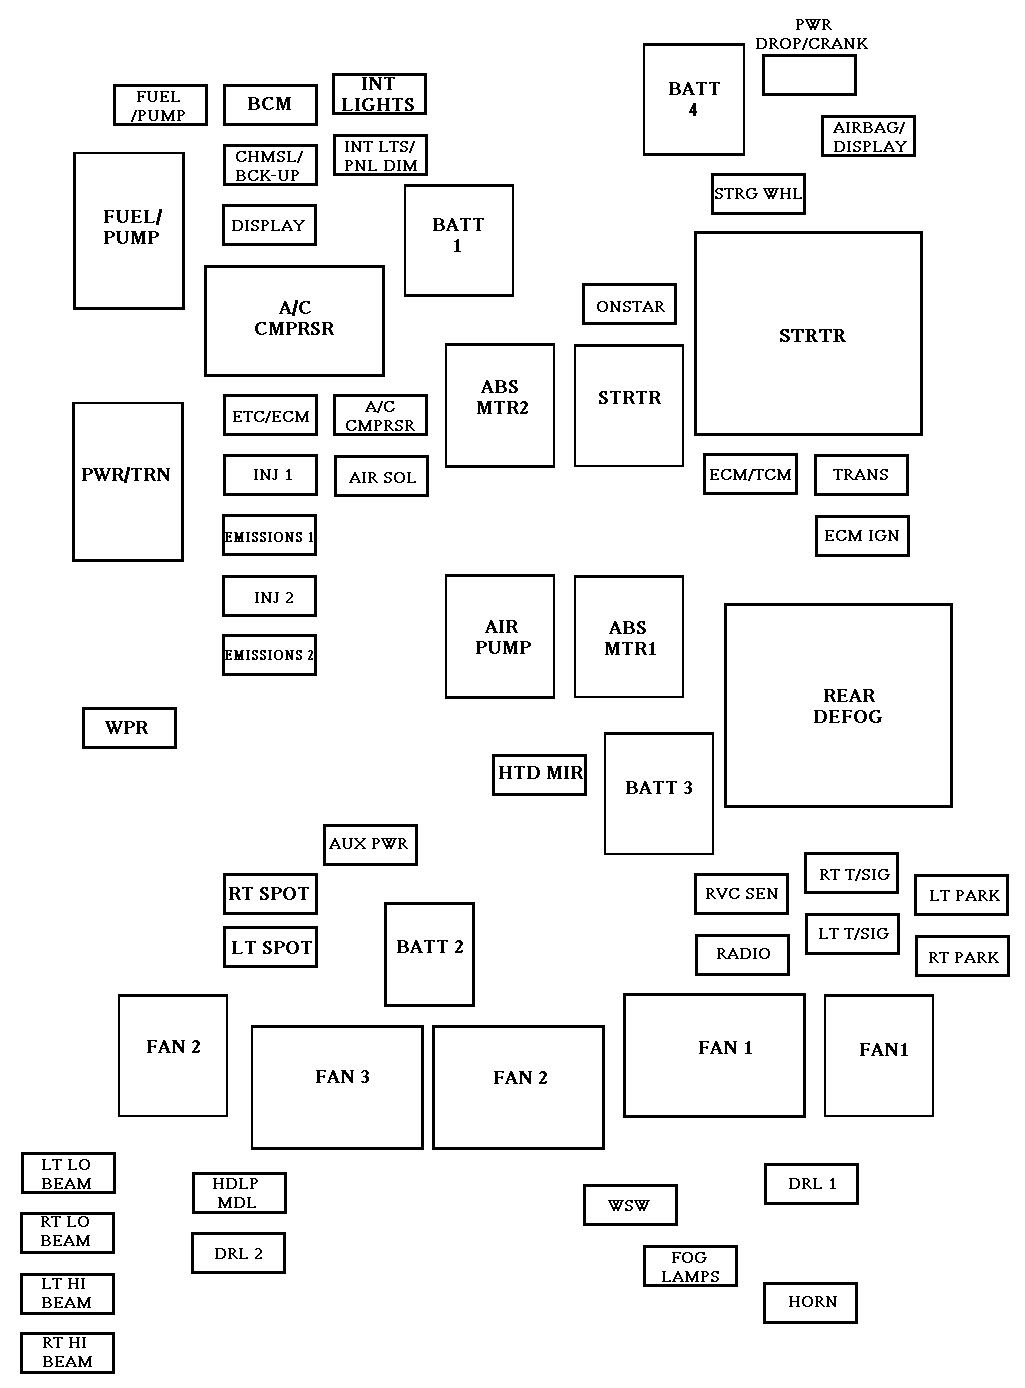 2012 Chevrolet Impala Fuse Diagram Wiring Diagram Page Note Owner A Note Owner A Granballodicomo It